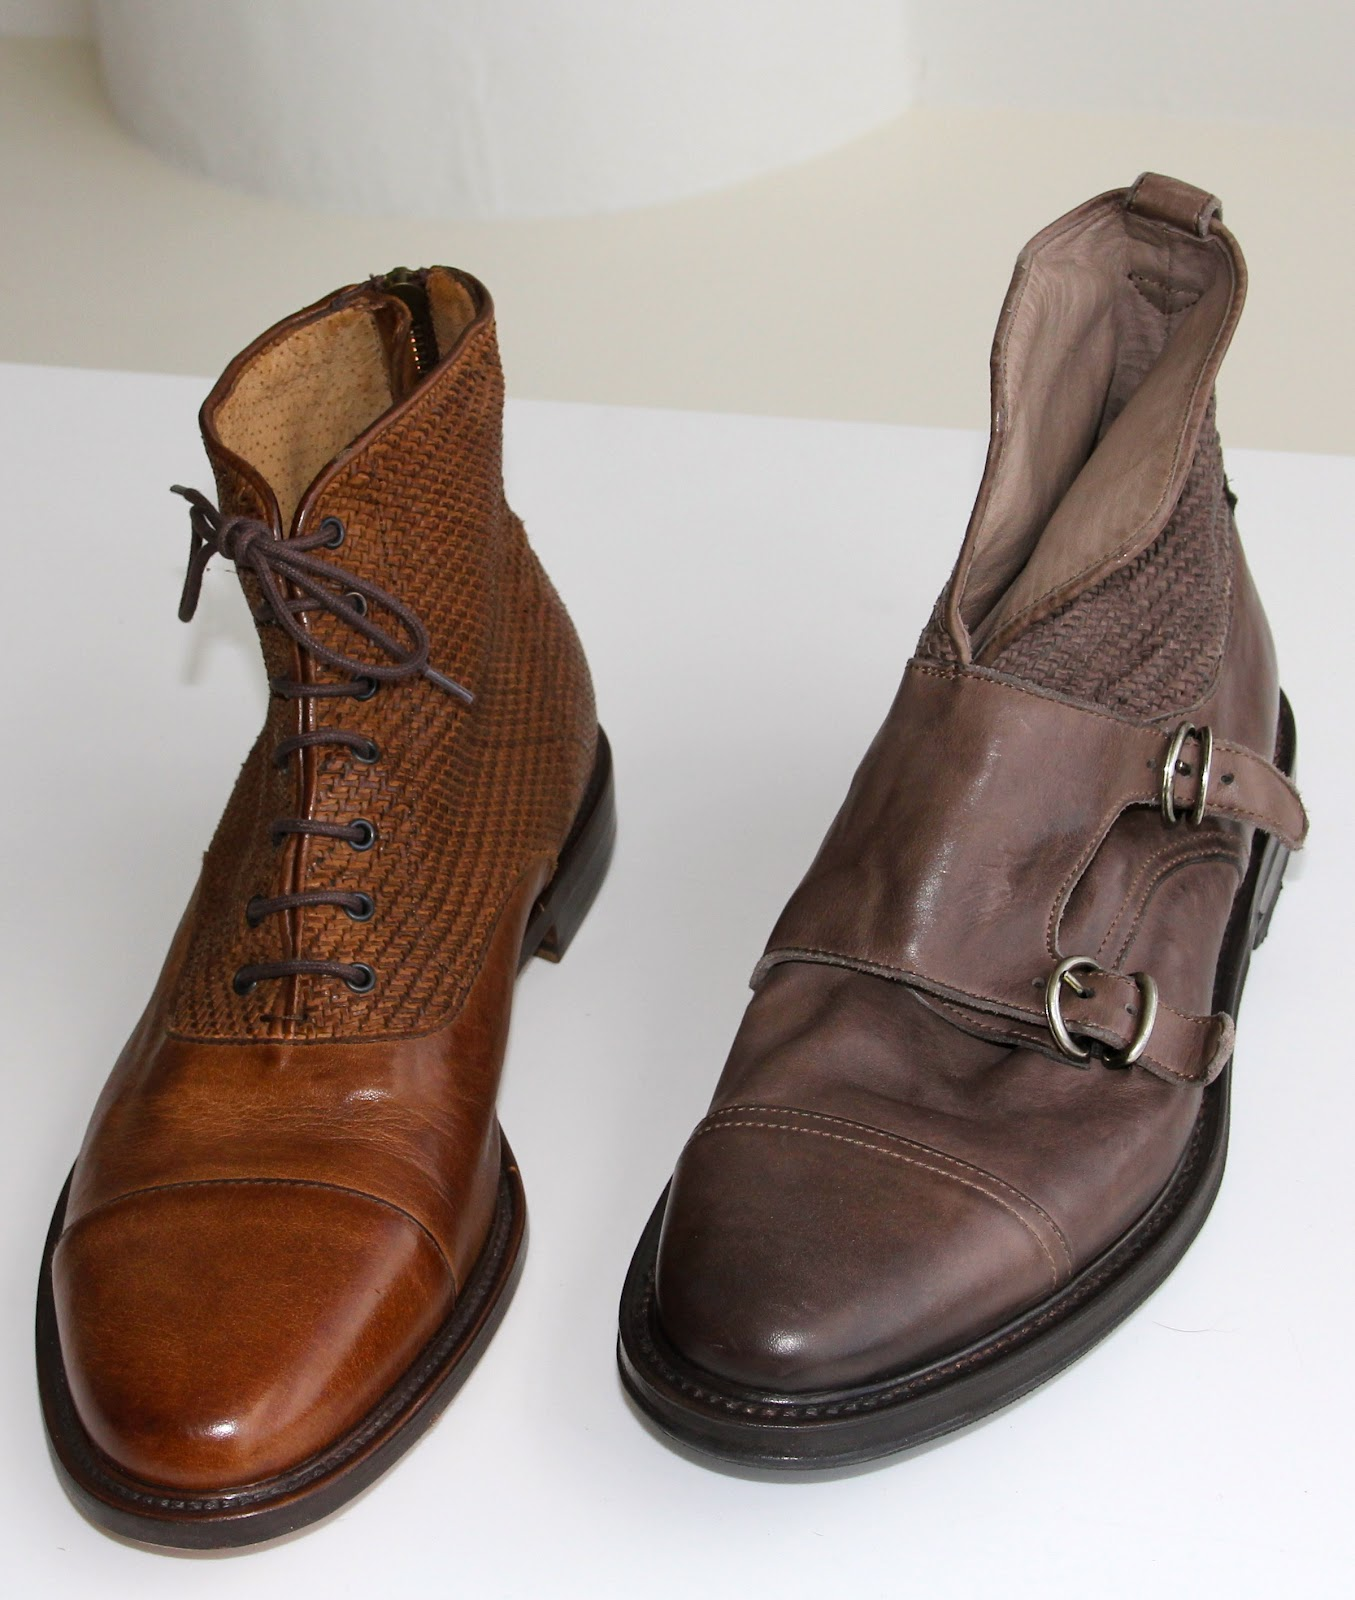 ef2a55de9d4488 rich burnt oxblood and brown-elegant lasts are slim-not clunky looking